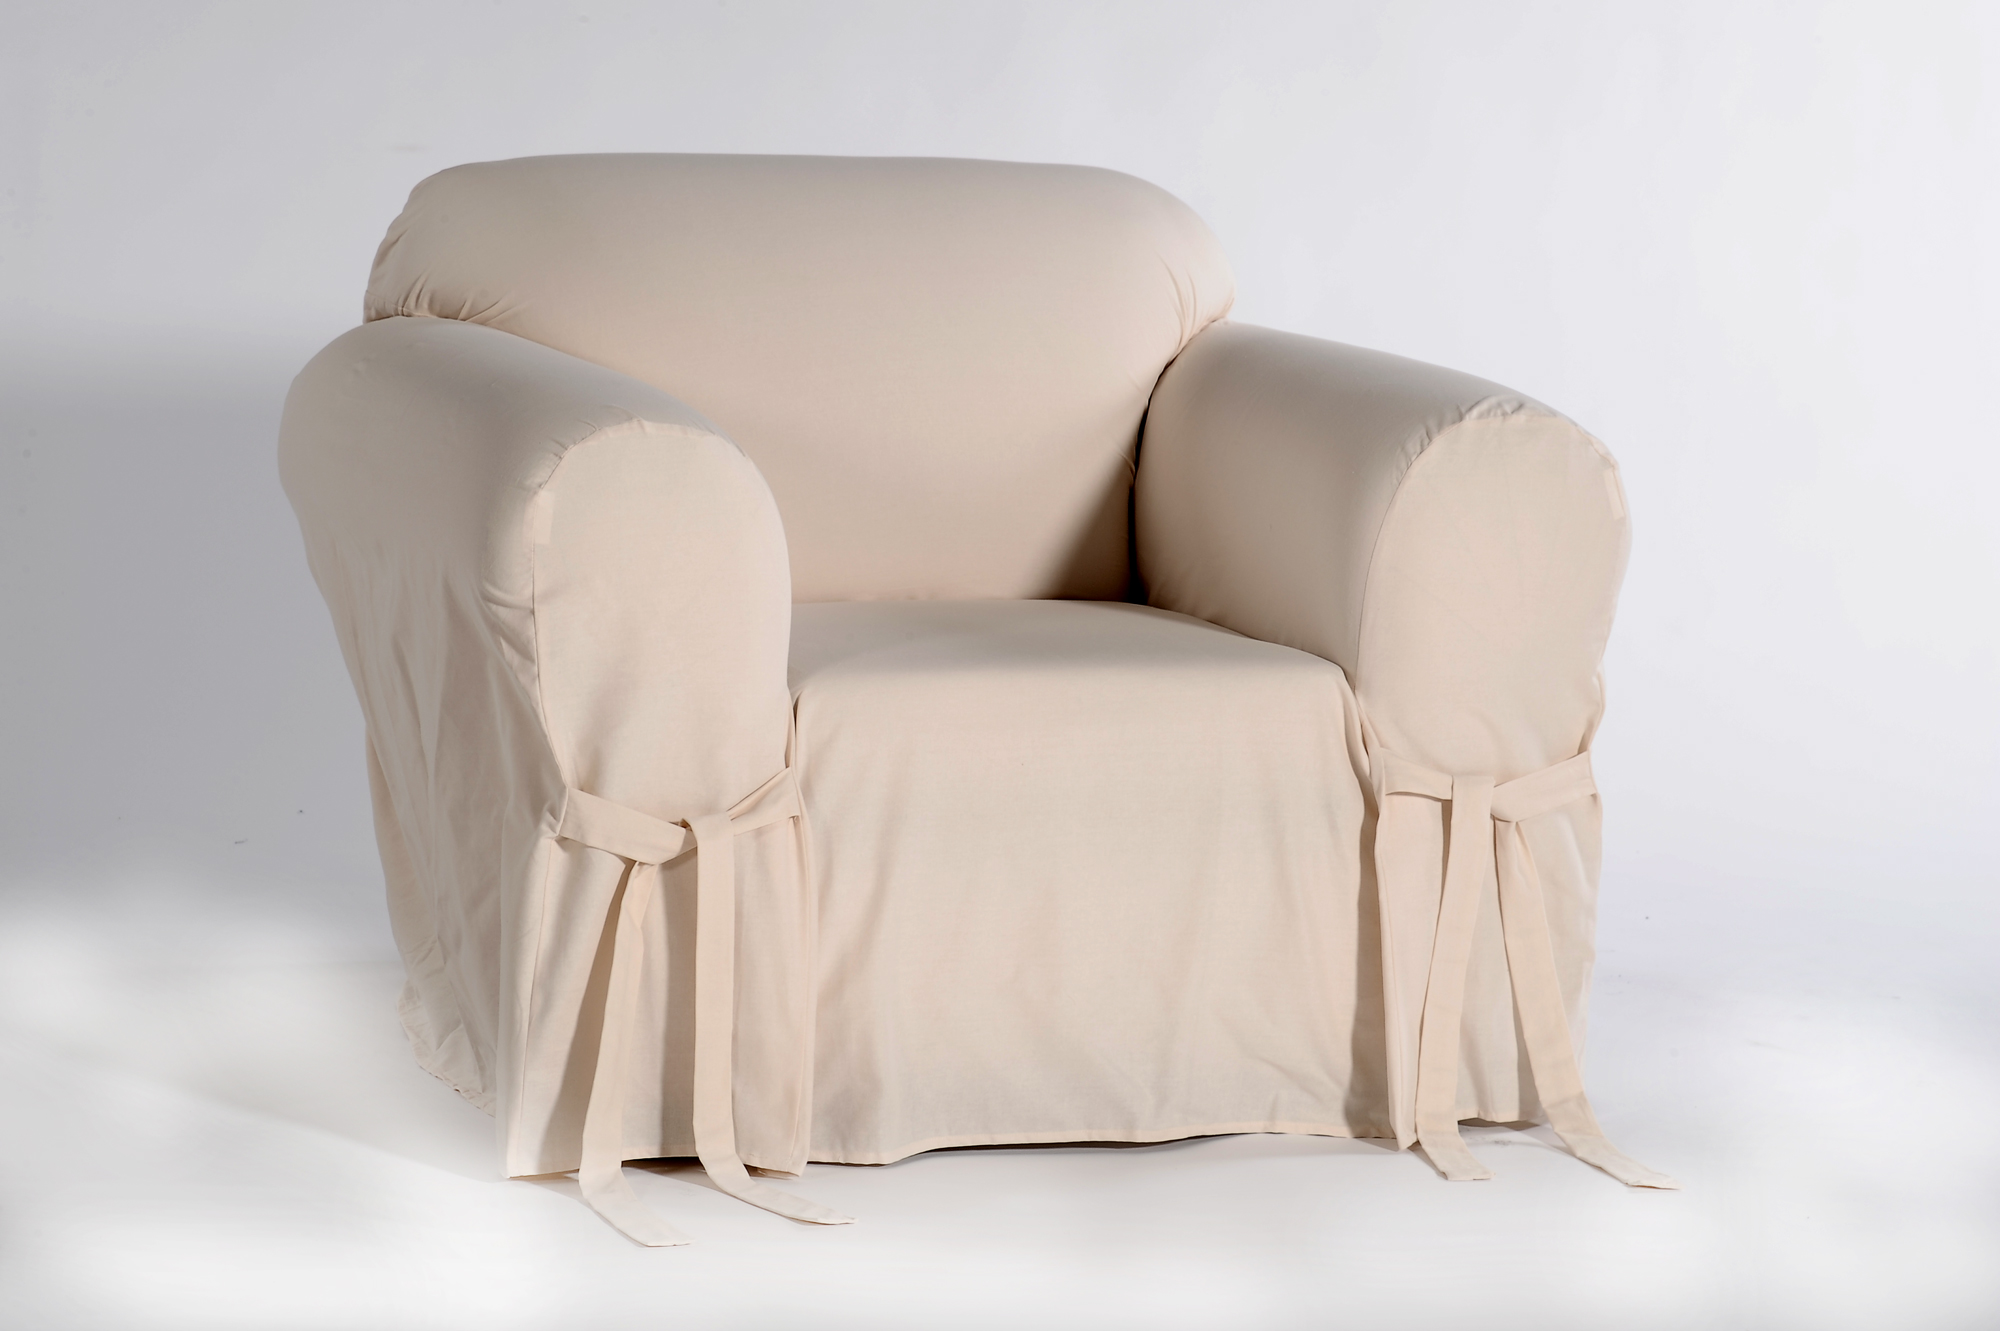 chair covers cotton kids 3 piece table and set classic slipcovers duck one slipcover